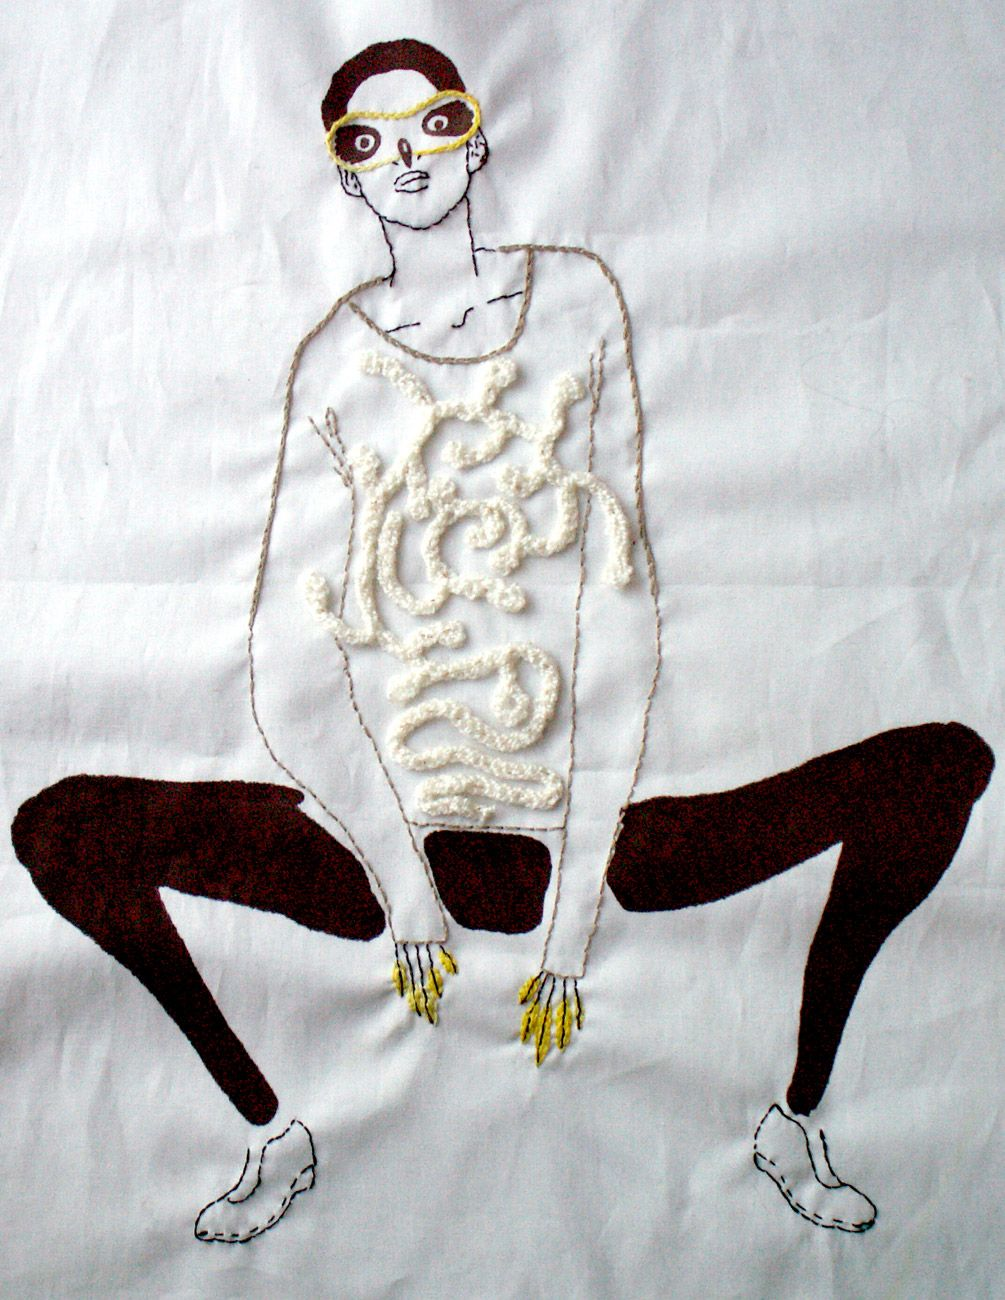 Laure-Pointereau-Illustration-Embroidery-02